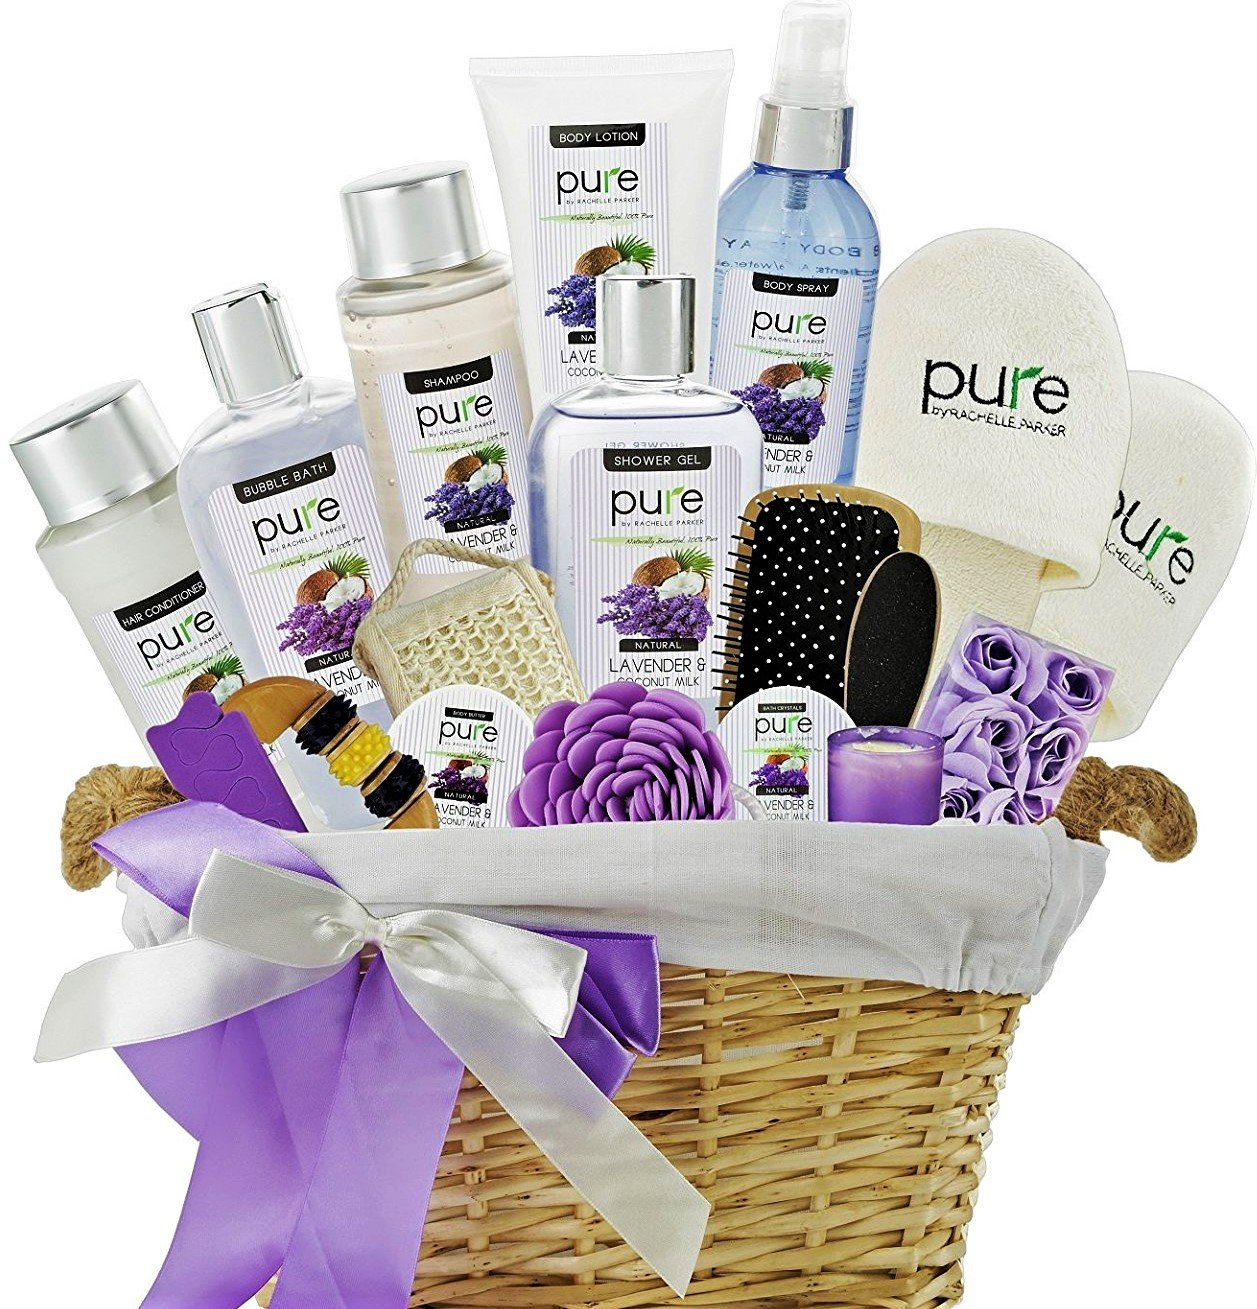 Lavender Spa Gift Basket for Women - Extra Large Bath Gift Set with Lavender Essential Oil & Coconut Milk for Relaxation Gift & Pampering Bath & Body Gifts Pure by Rachelle Parker